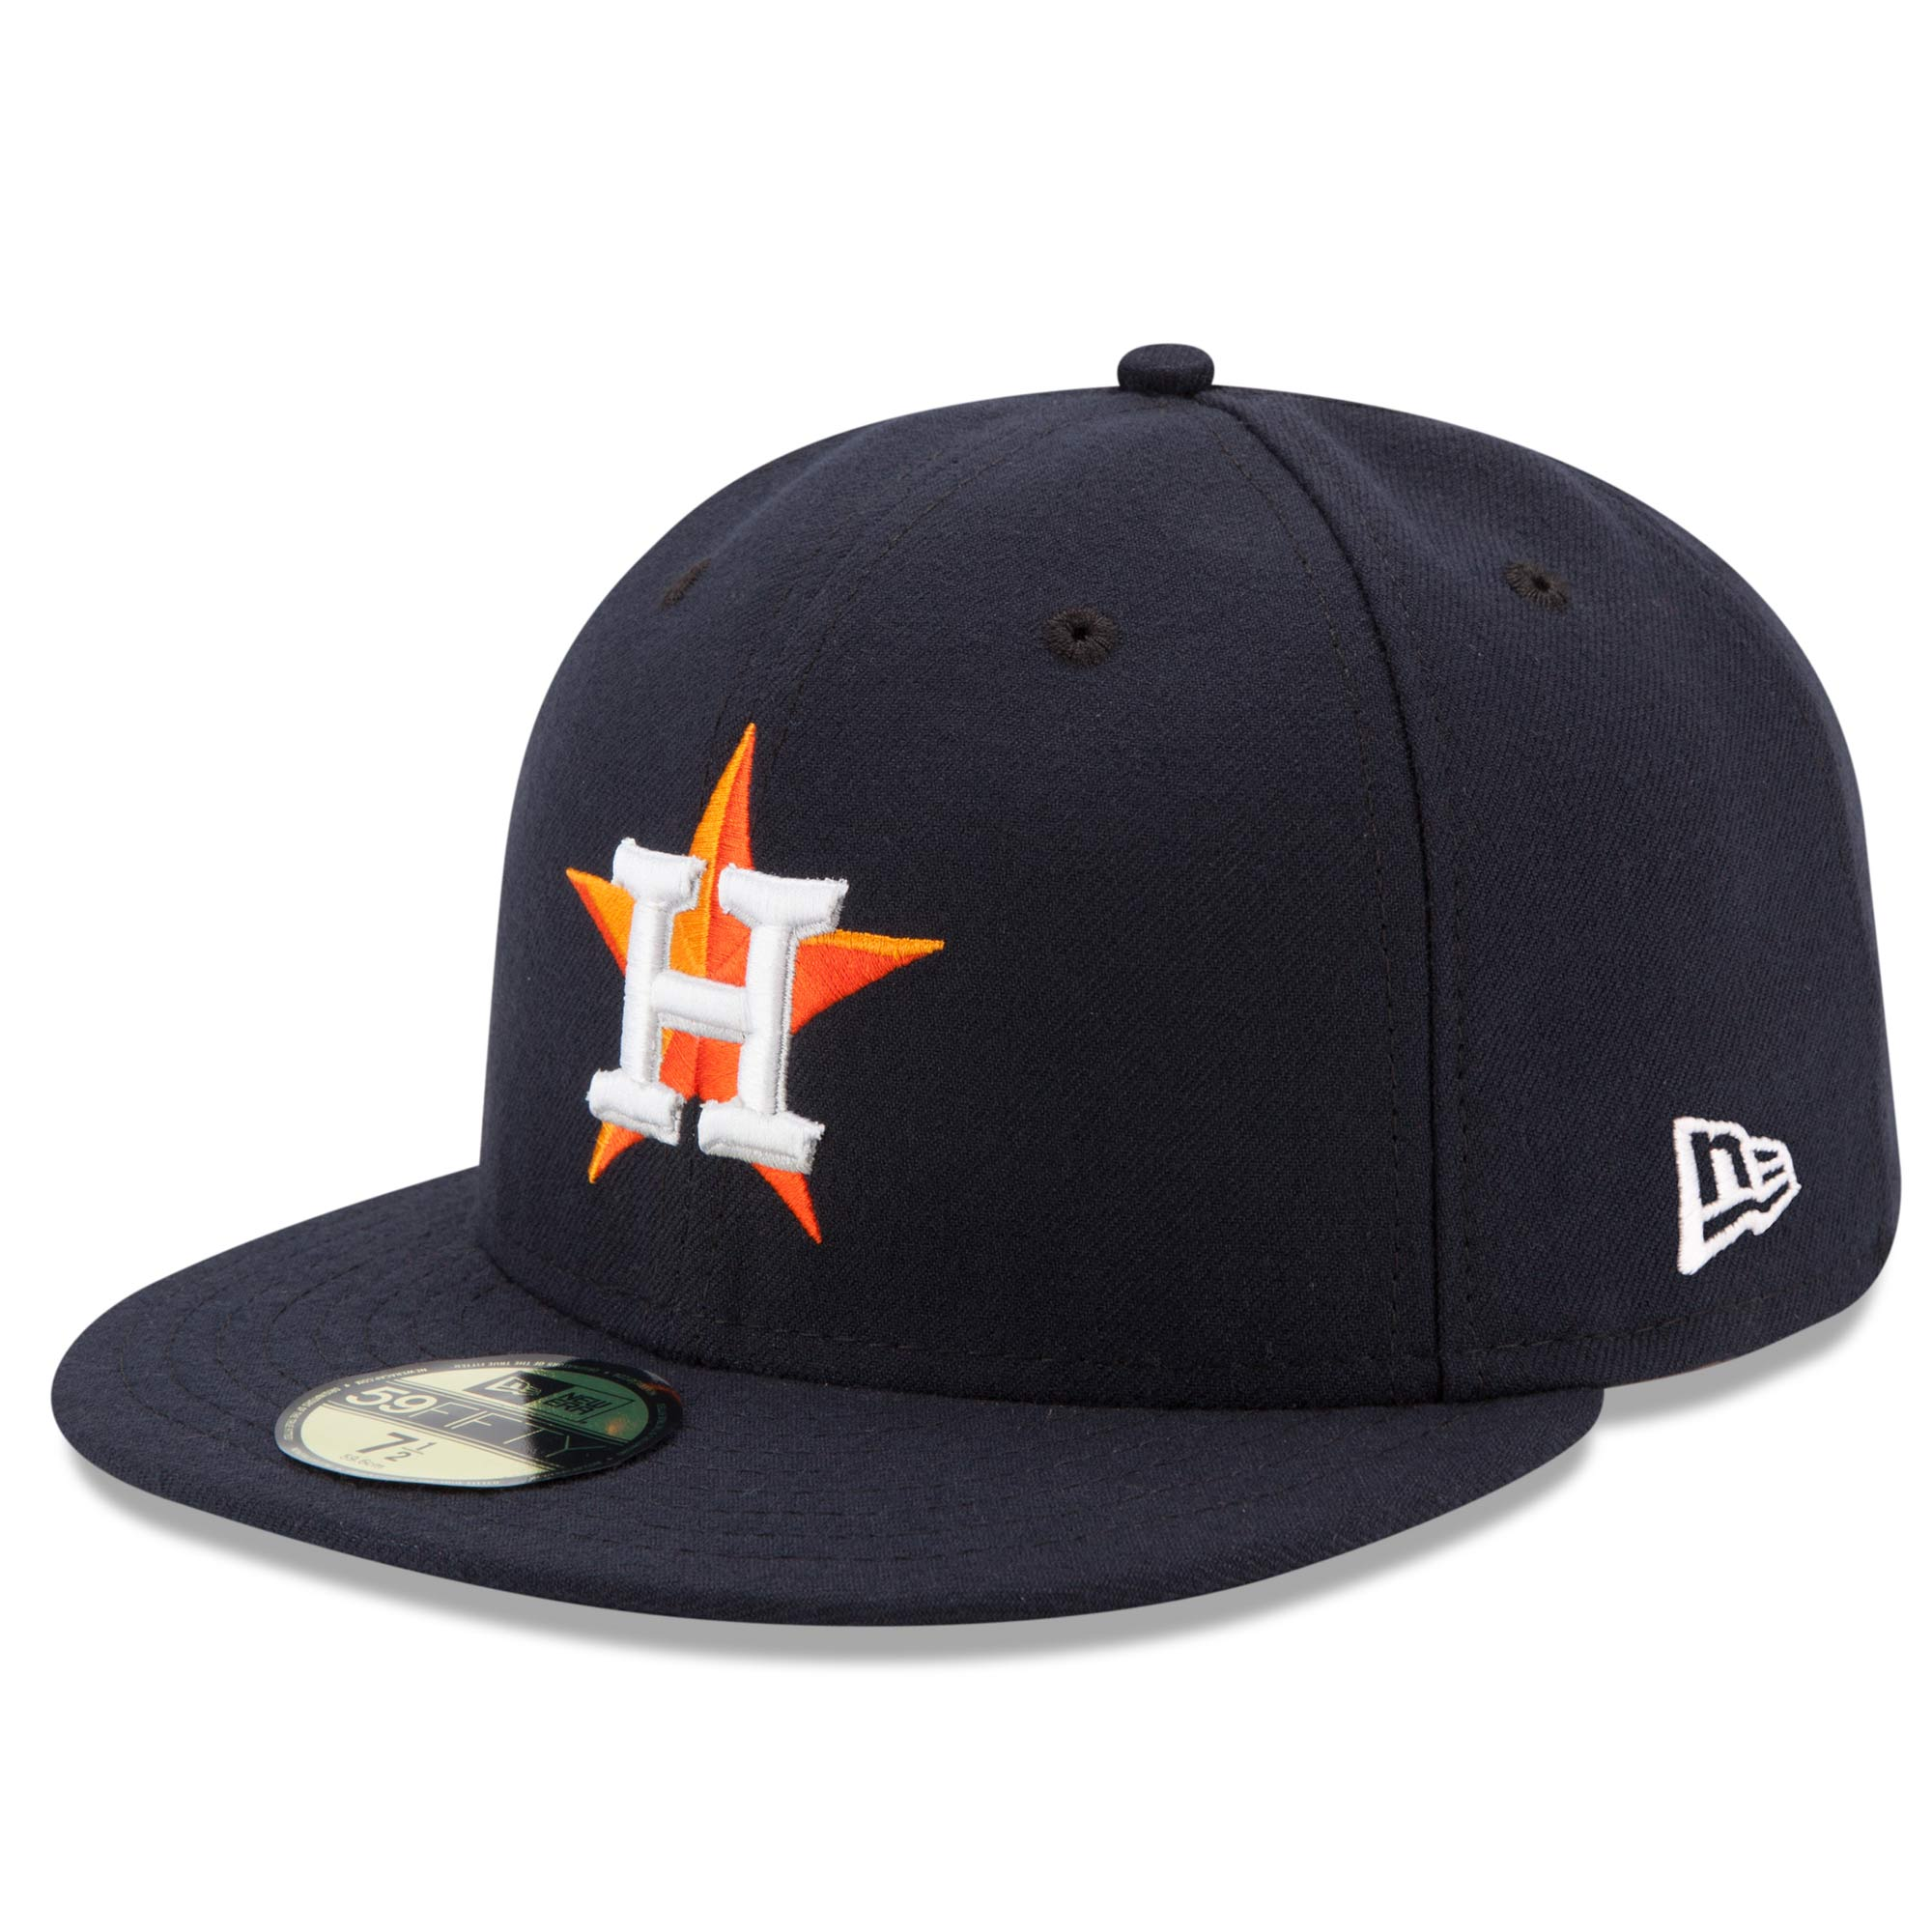 0d6b517cf Houston Astros Team Shop - Walmart.com